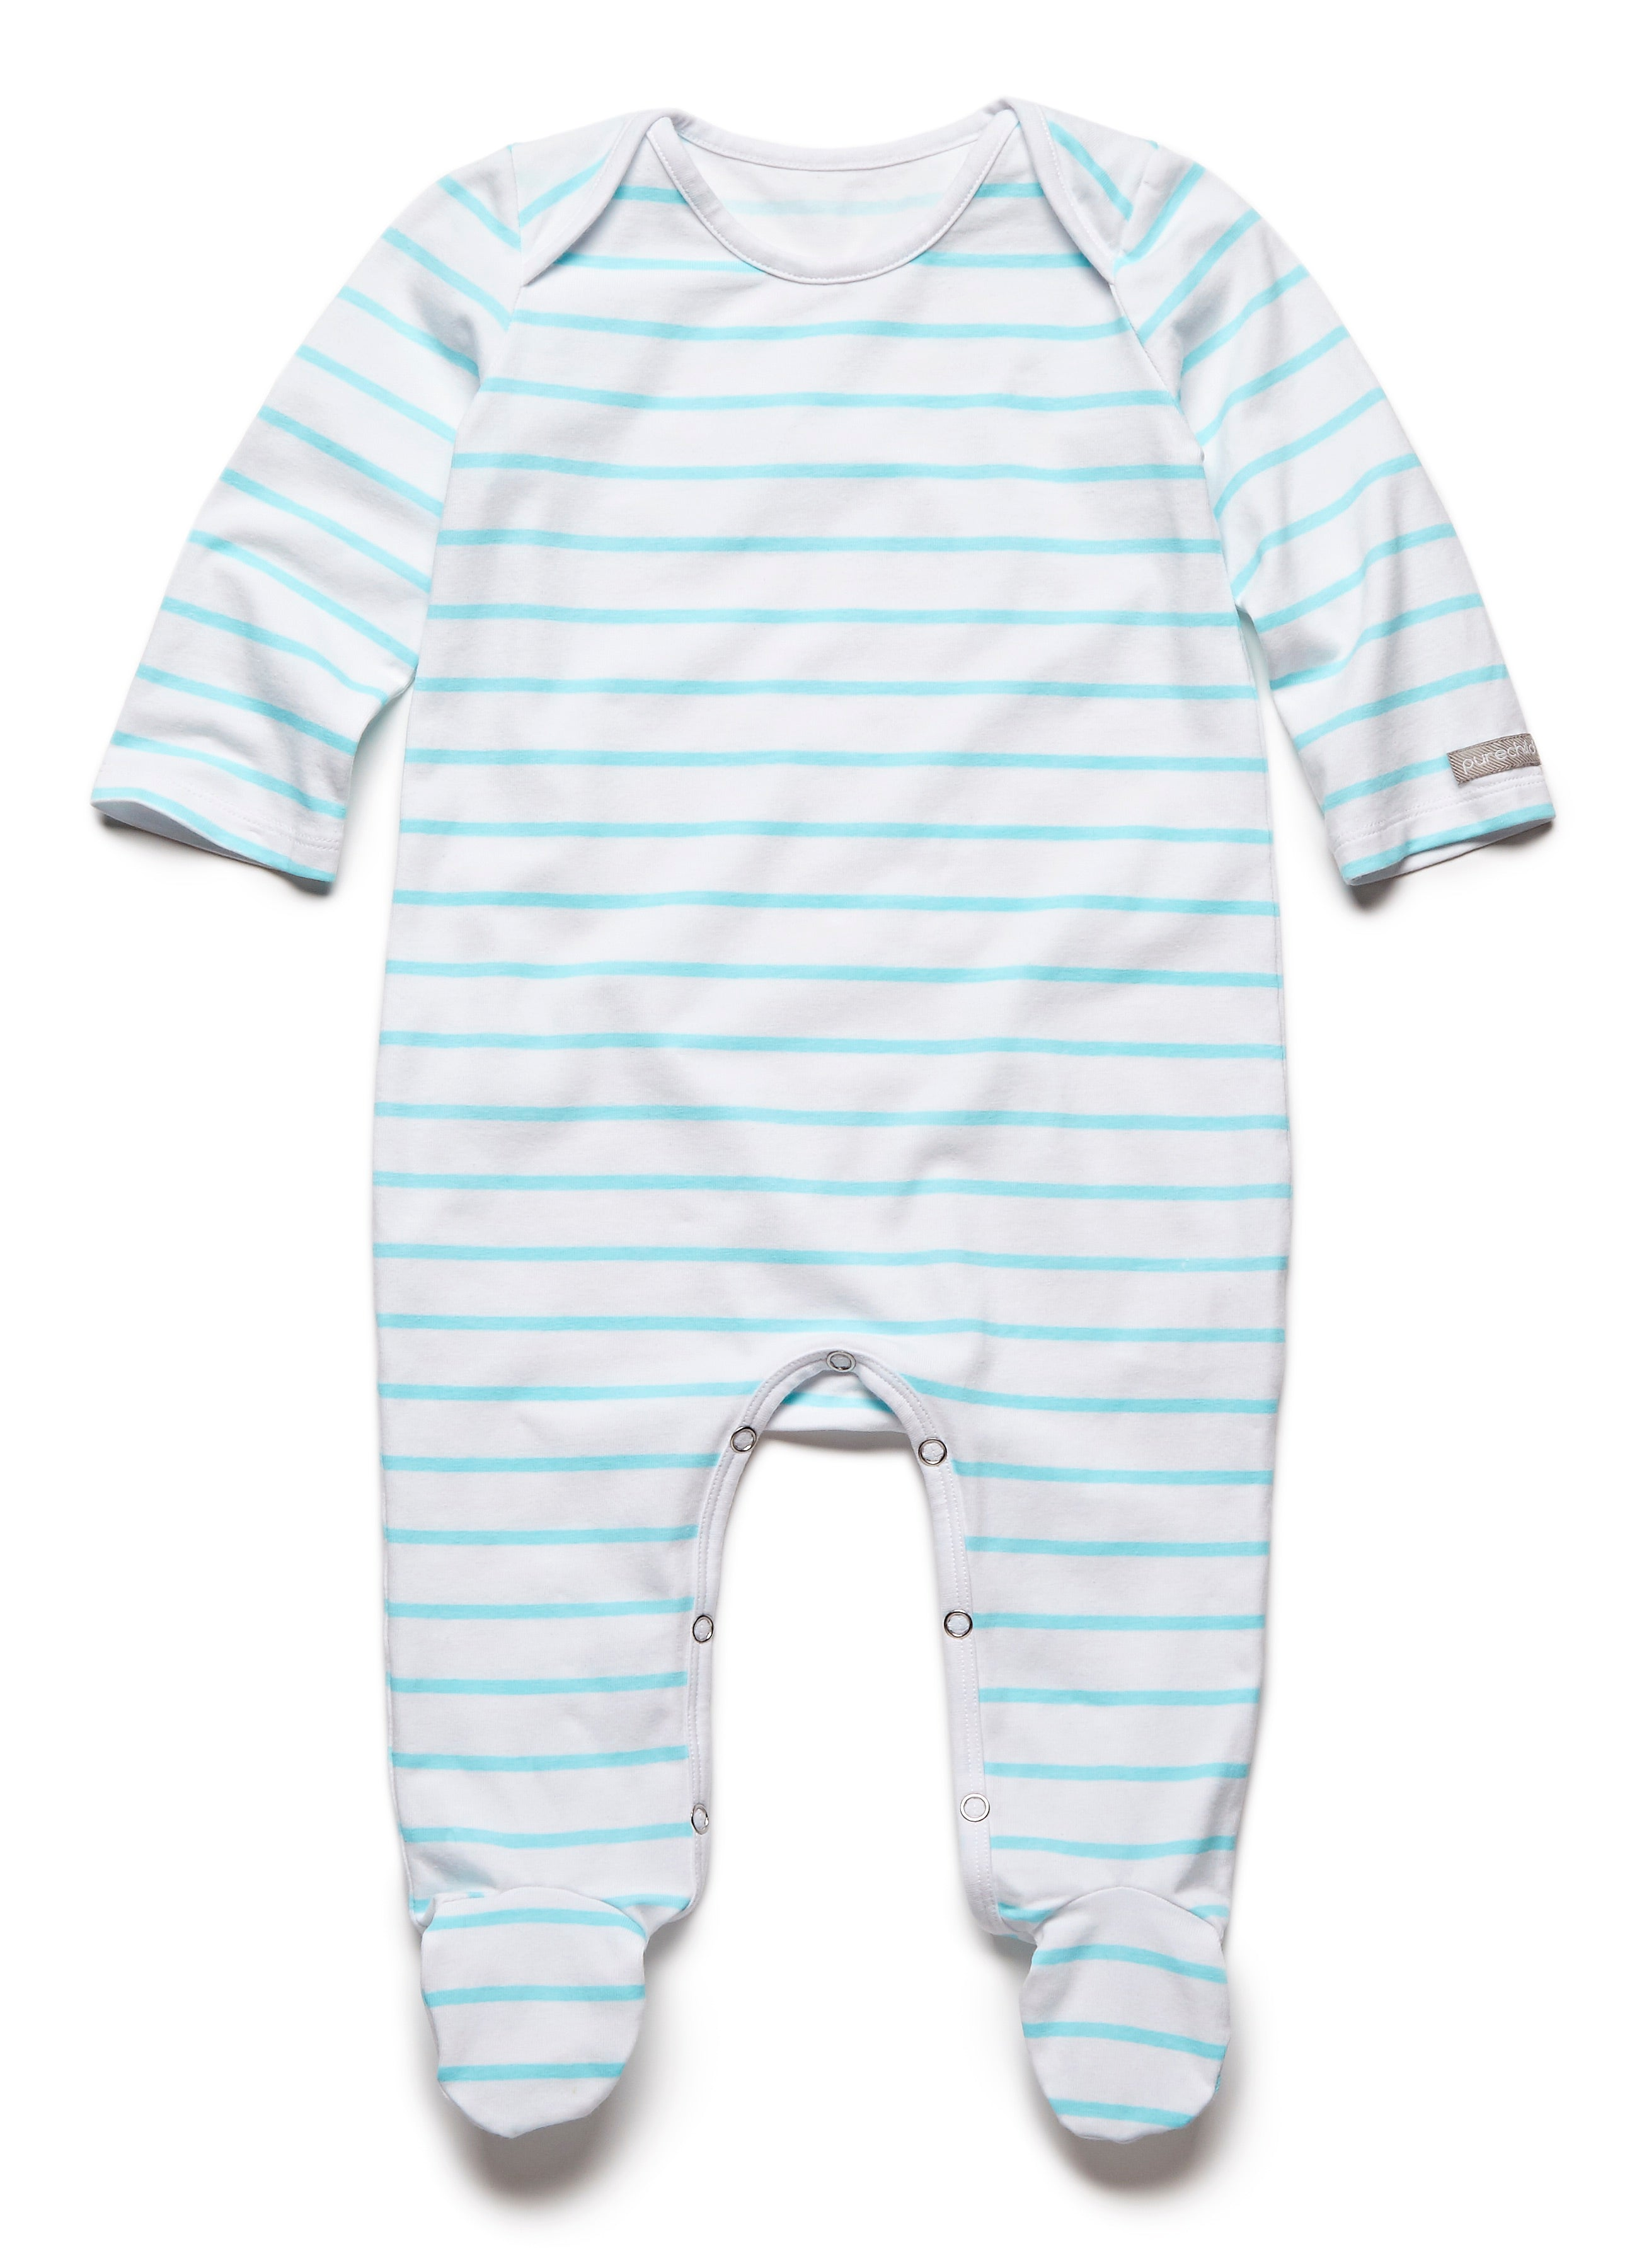 861dd2422 pure striped turquoise fullbody onesie – Purechild Clothing